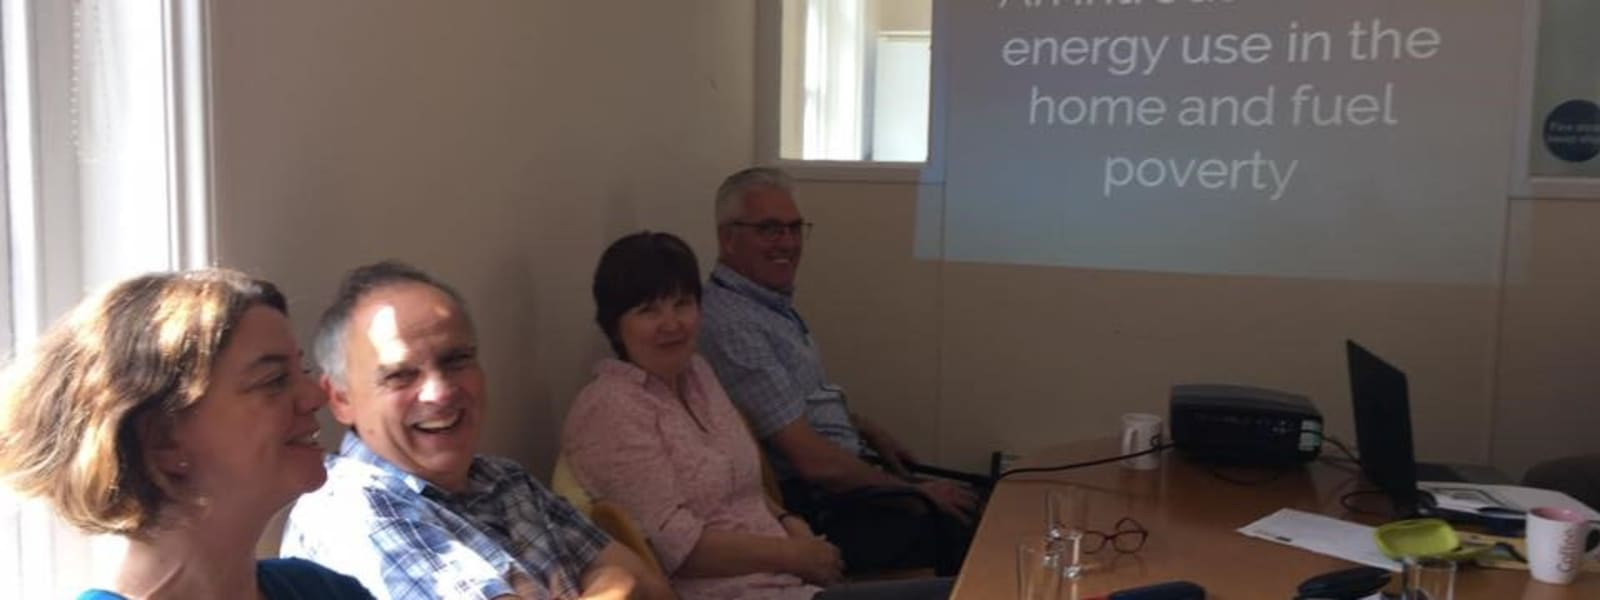 Accredited training on energy  use and fuel poverty